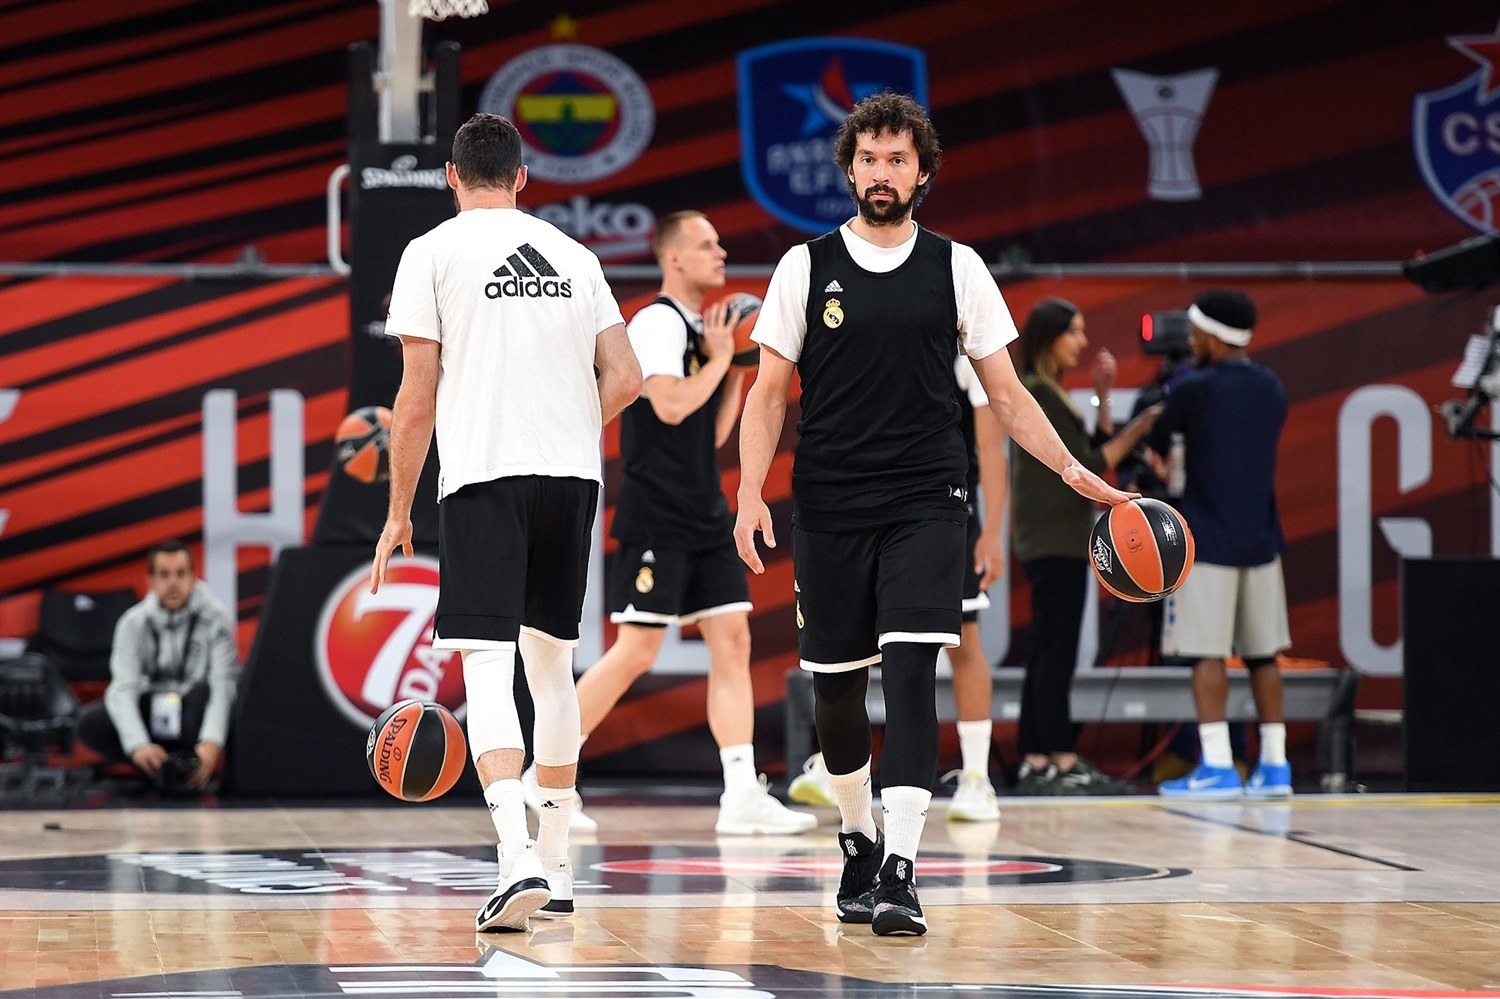 Sergio Llull - Real Madrid practices - Final Four Vitoria-Gasteiz 2019 - EB18